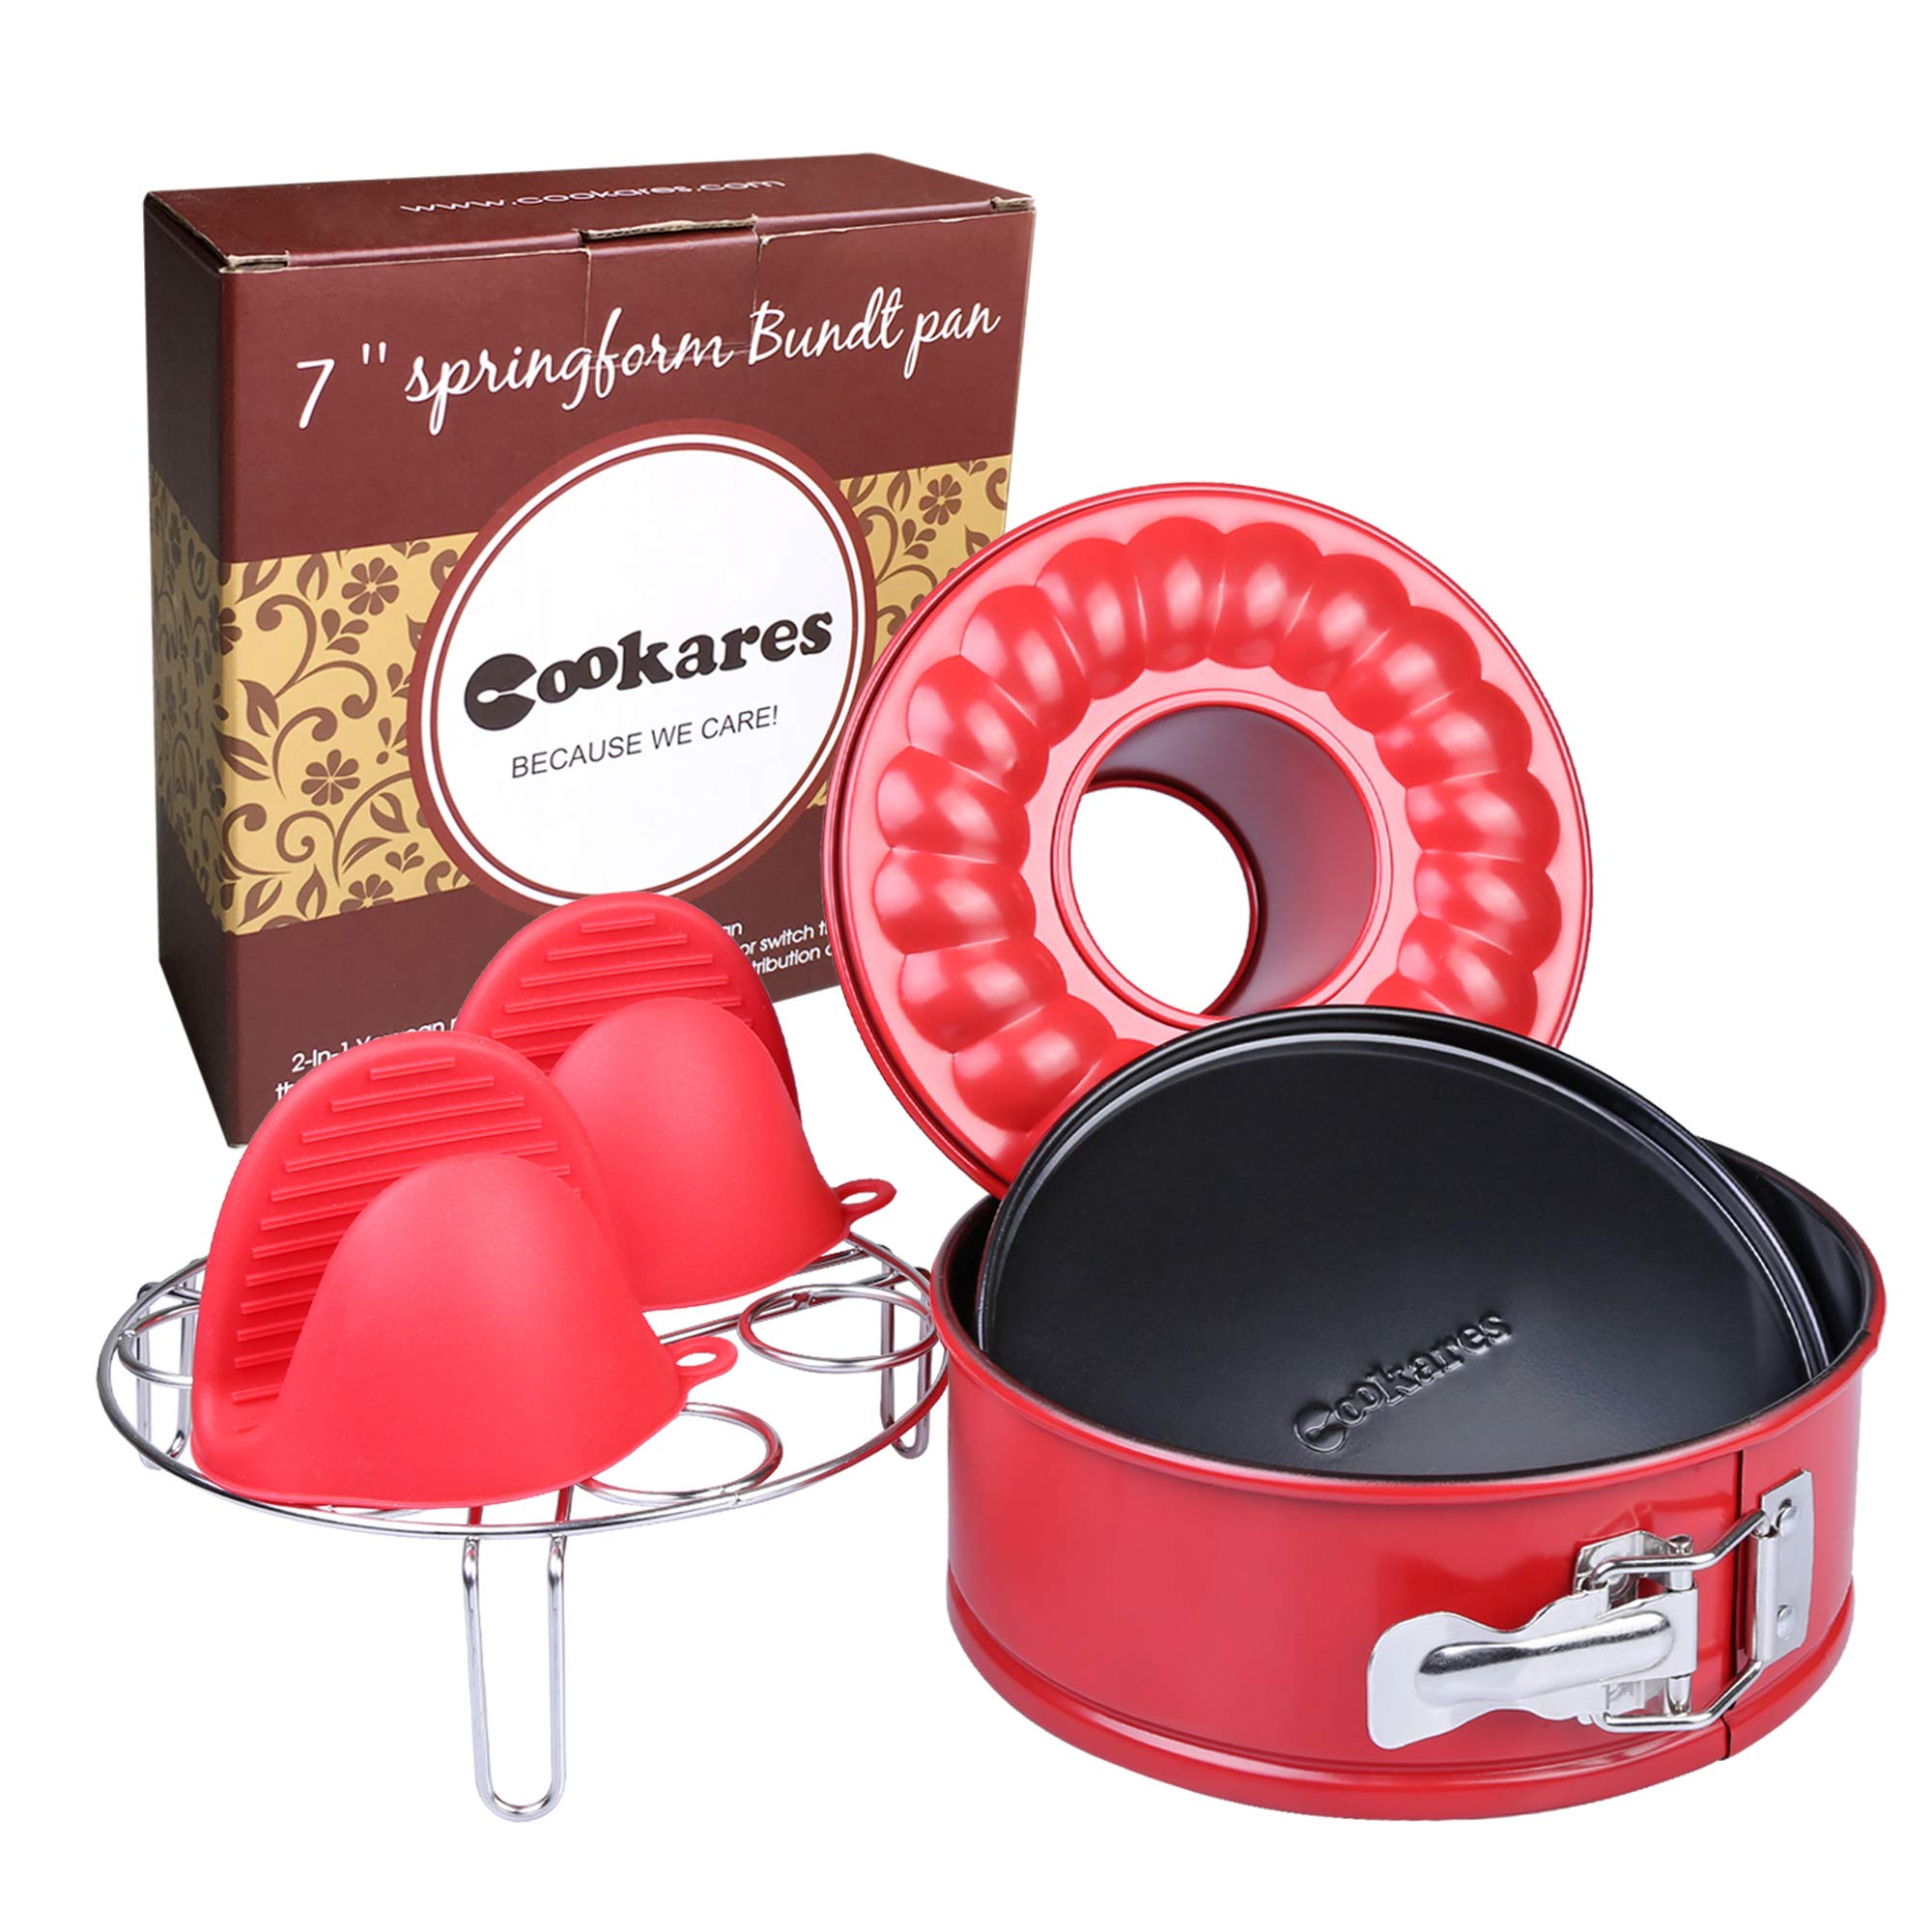 Nonstick 2-in-1 springform 7-inch Cheesecake Quick-Release pan Set: Two Interchangeable Bottoms Egg Rack for Instant Pot Accessories & 2 Mini Silicone Mitts - fits 5 6 8 Qt by CooKares product image